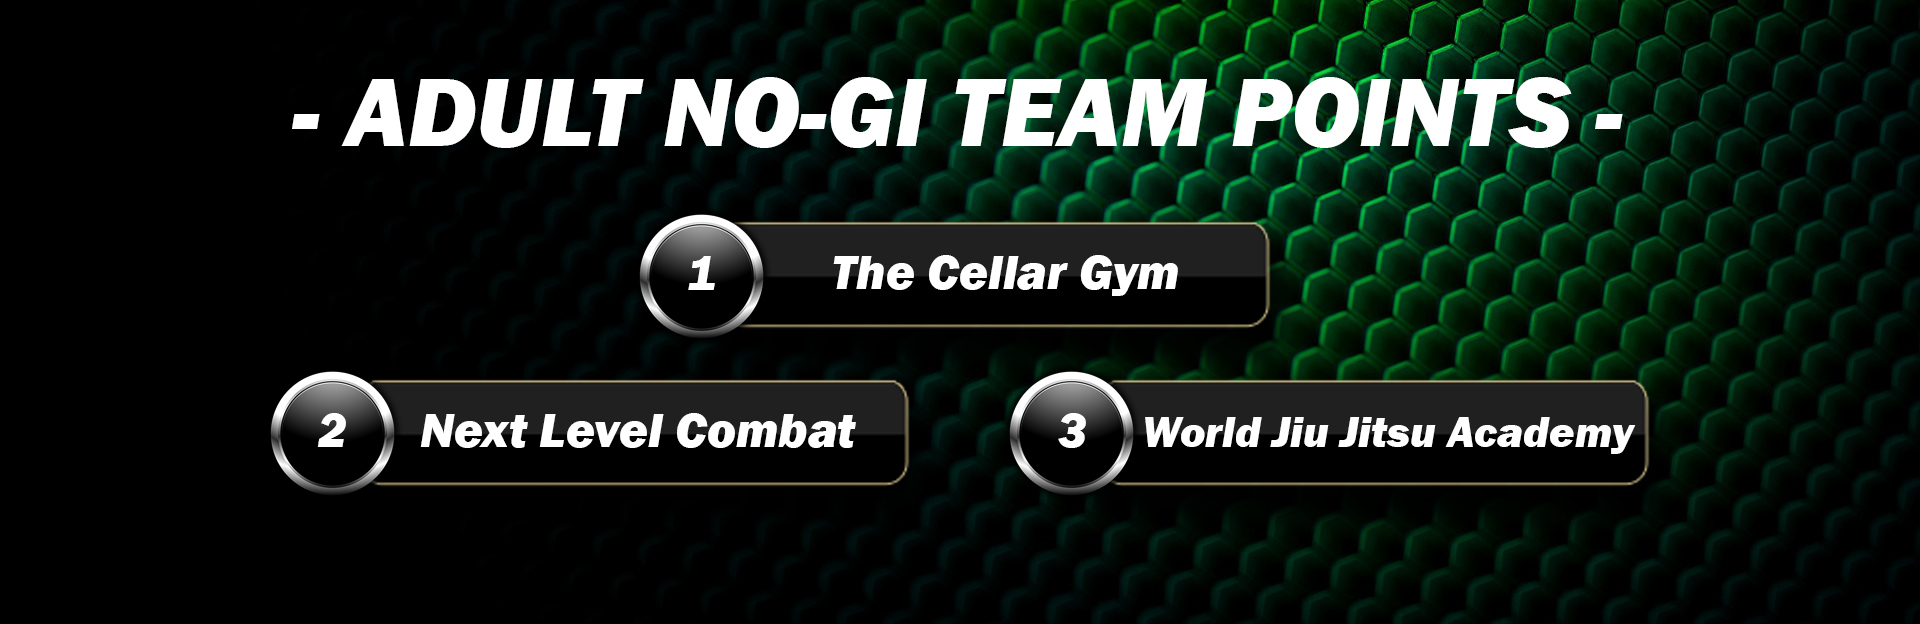 adult-team-points-no-gi